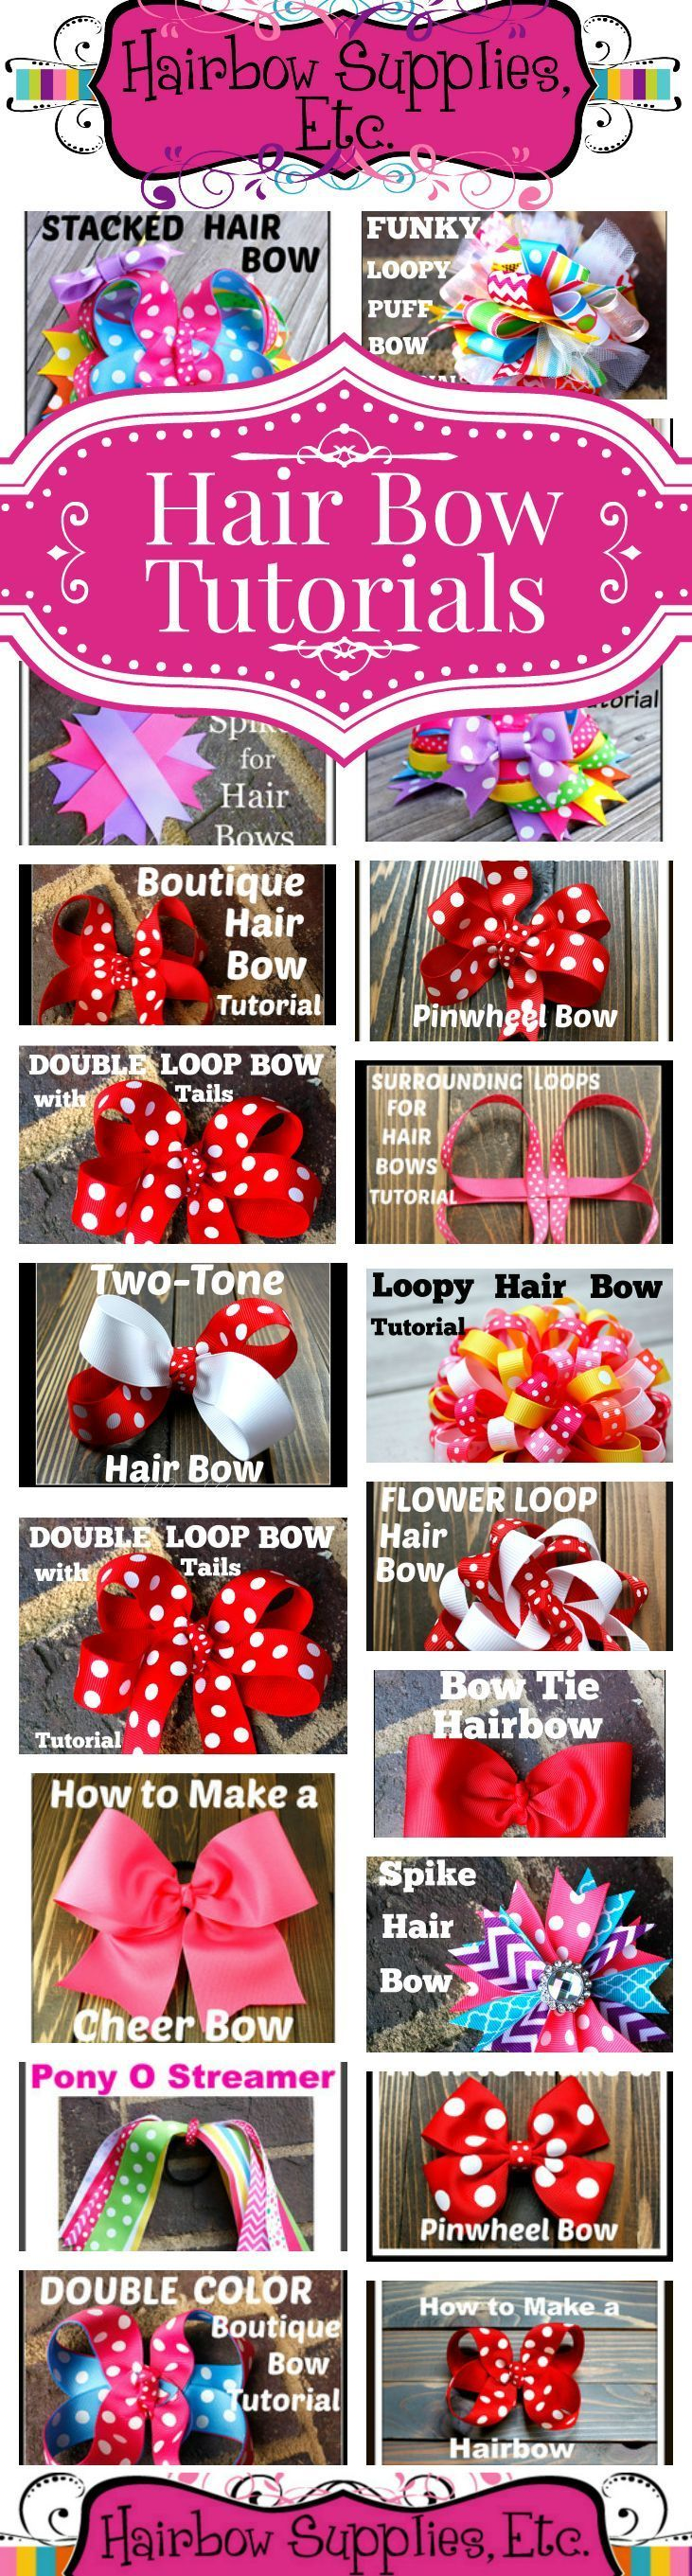 Diy hair accessories for baby girl - Diy Your Christmas Gifts This Year With Glamulet They Are Compatible With Pandora Bracelets Instructions And Videos For How To Make All Sorts Of Different